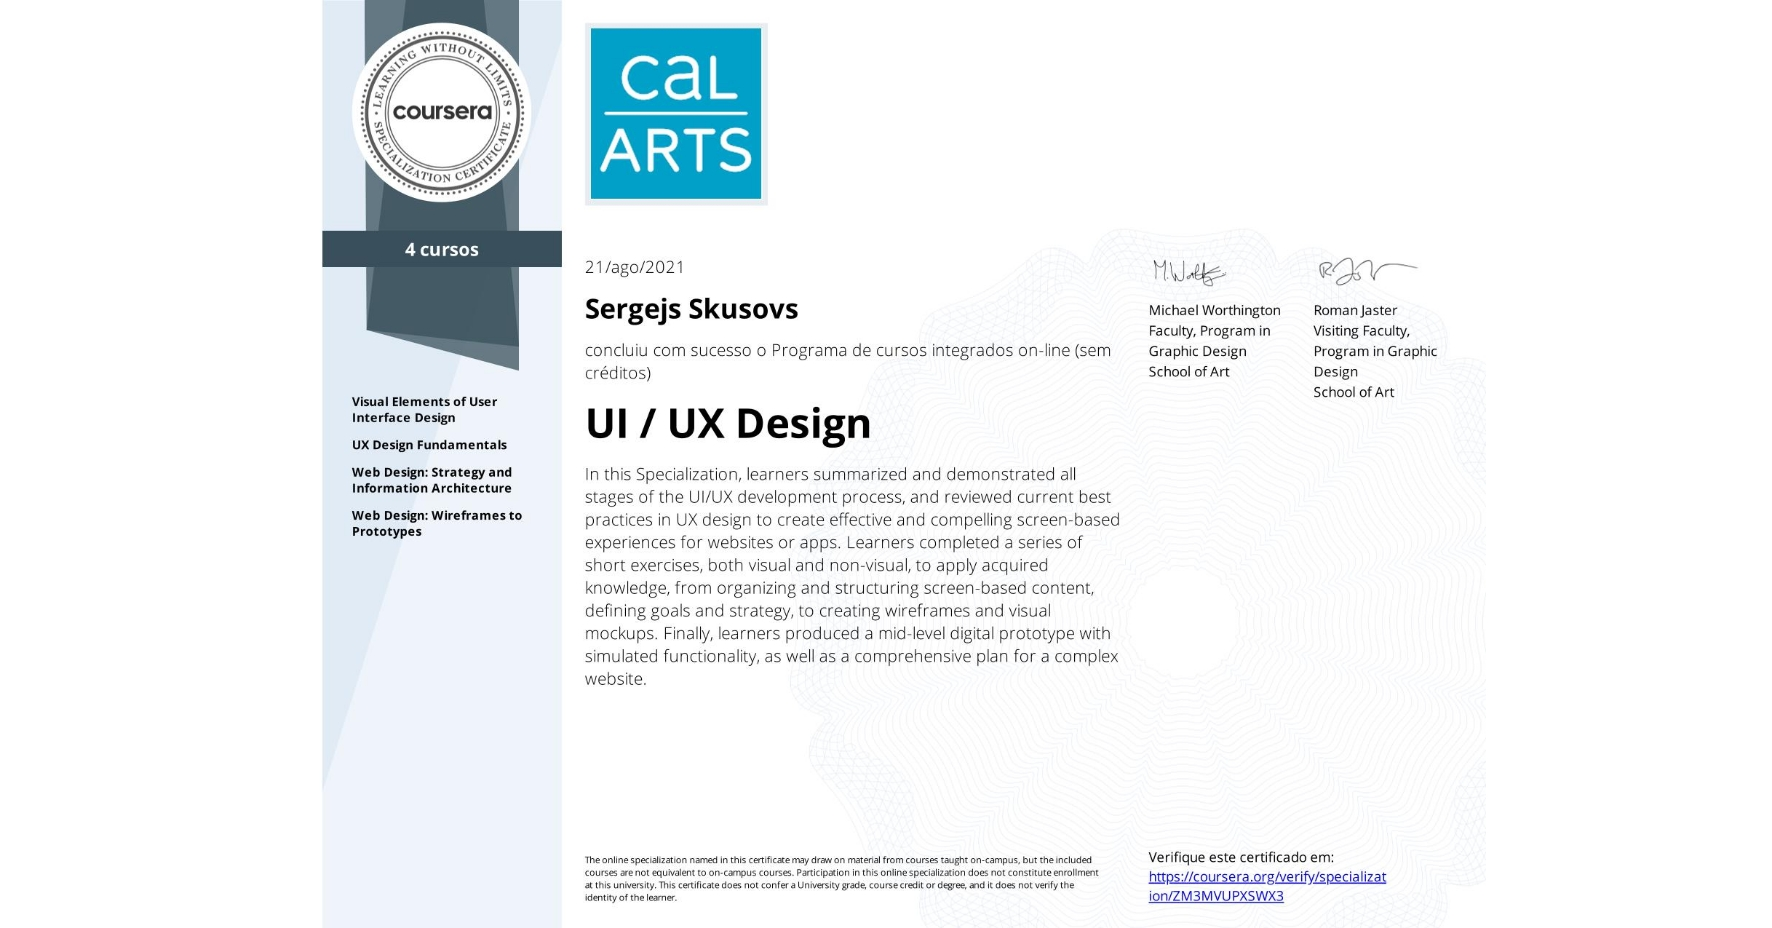 View certificate for Sergejs Skusovs, UI / UX Design, offered through Coursera. In this Specialization, learners summarized and demonstrated all stages of the UI/UX development process, and reviewed current best practices in UX design to create effective and compelling screen-based experiences for websites or apps. Learners completed a series of short exercises, both visual and non-visual, to apply acquired knowledge, from organizing and structuring screen-based content, defining goals and strategy, to creating wireframes and visual mockups. Finally, learners produced a mid-level digital prototype with simulated functionality, as well as a comprehensive plan for a complex website.